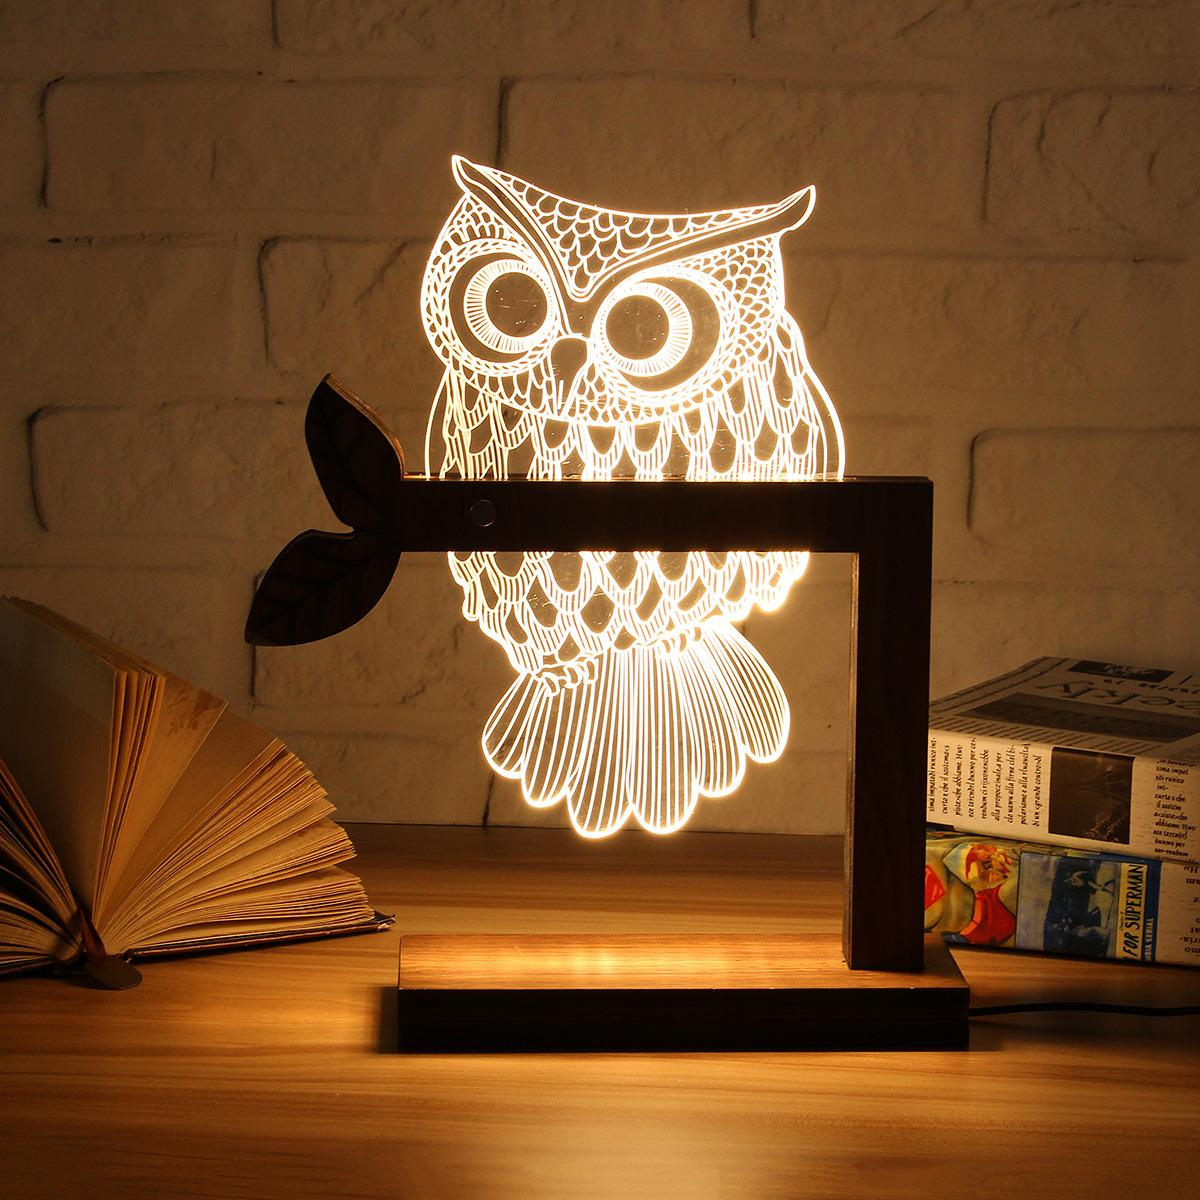 Wooden USB 3D LED Animal Butterfly OWL Night Light Warm Lighting Table Reading Lamps Bedroom Home Decor Birthday Gift adjustable owl shaped 3d wooden stand lamp night light bedroom table desk lamp warm white lighting plug connector home decor